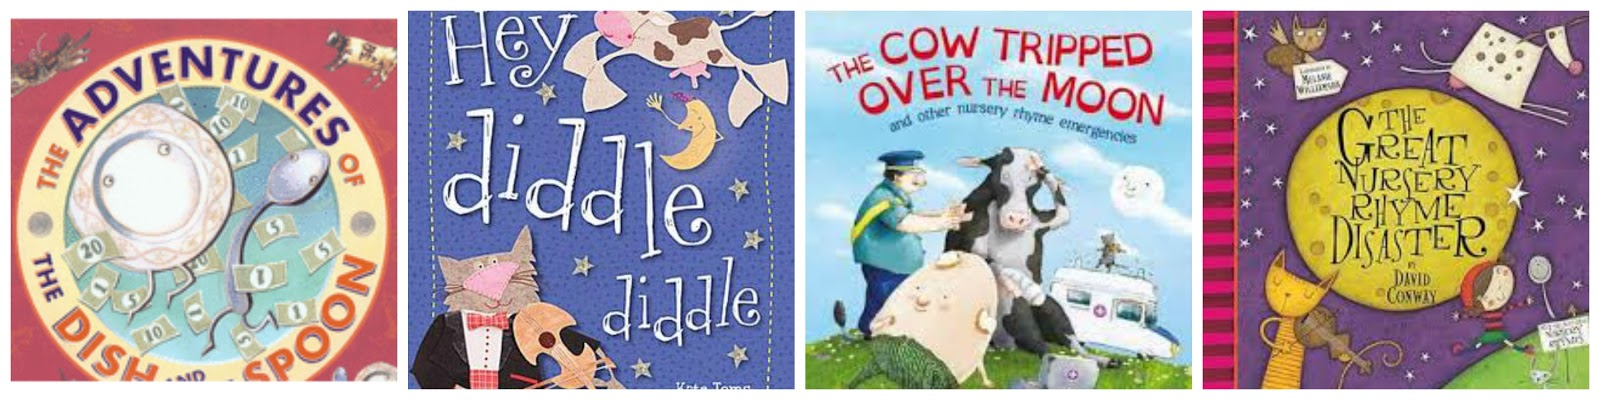 Diddle By Kate Toms The Adventures Of Dish And Spoon Mini Grey A Book With Same Le Cow Jumped Over Moon Jeanne Willis